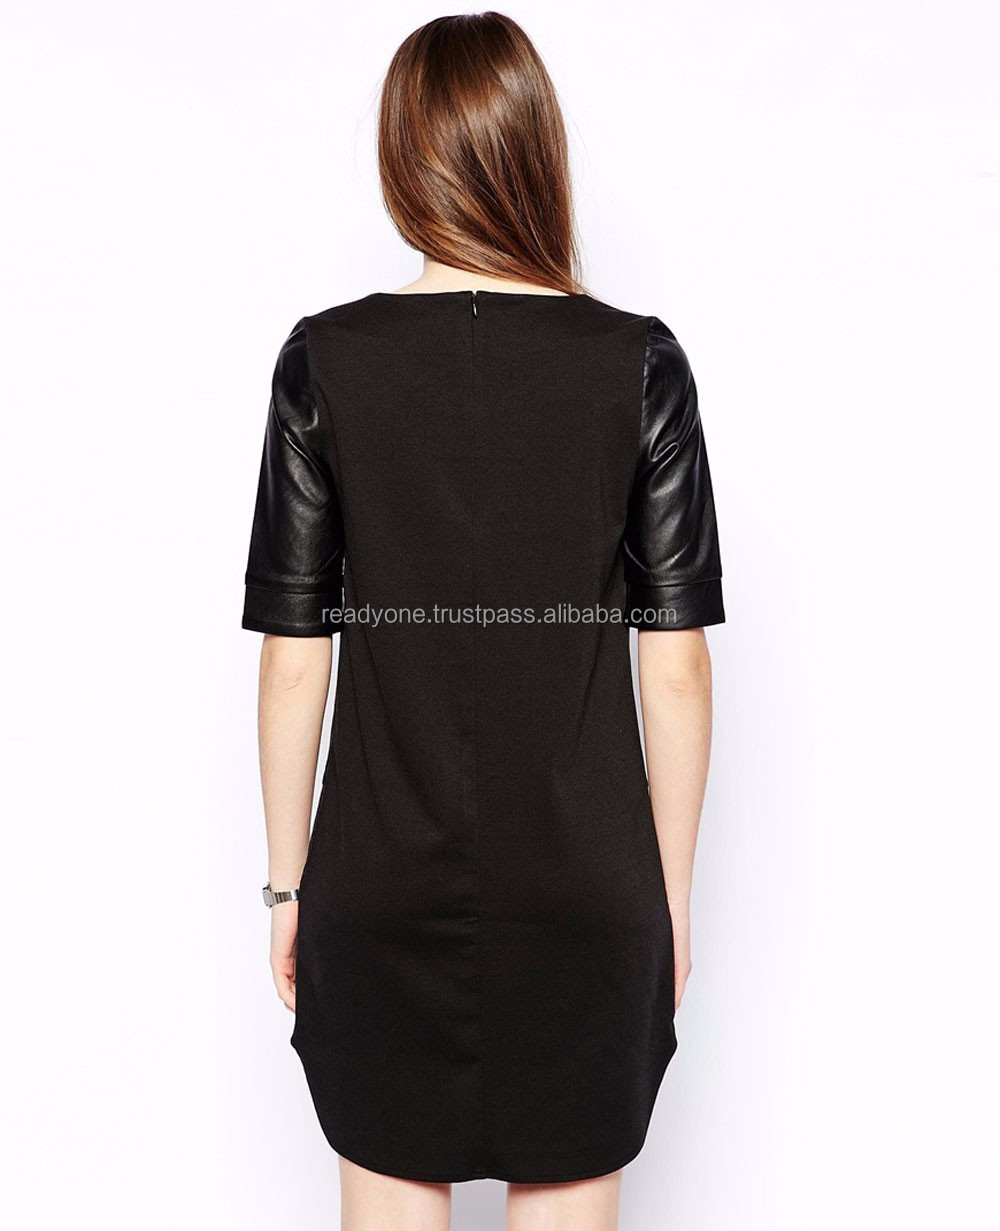 stylish leather dress /leather hot wear/stylish leather women wearing